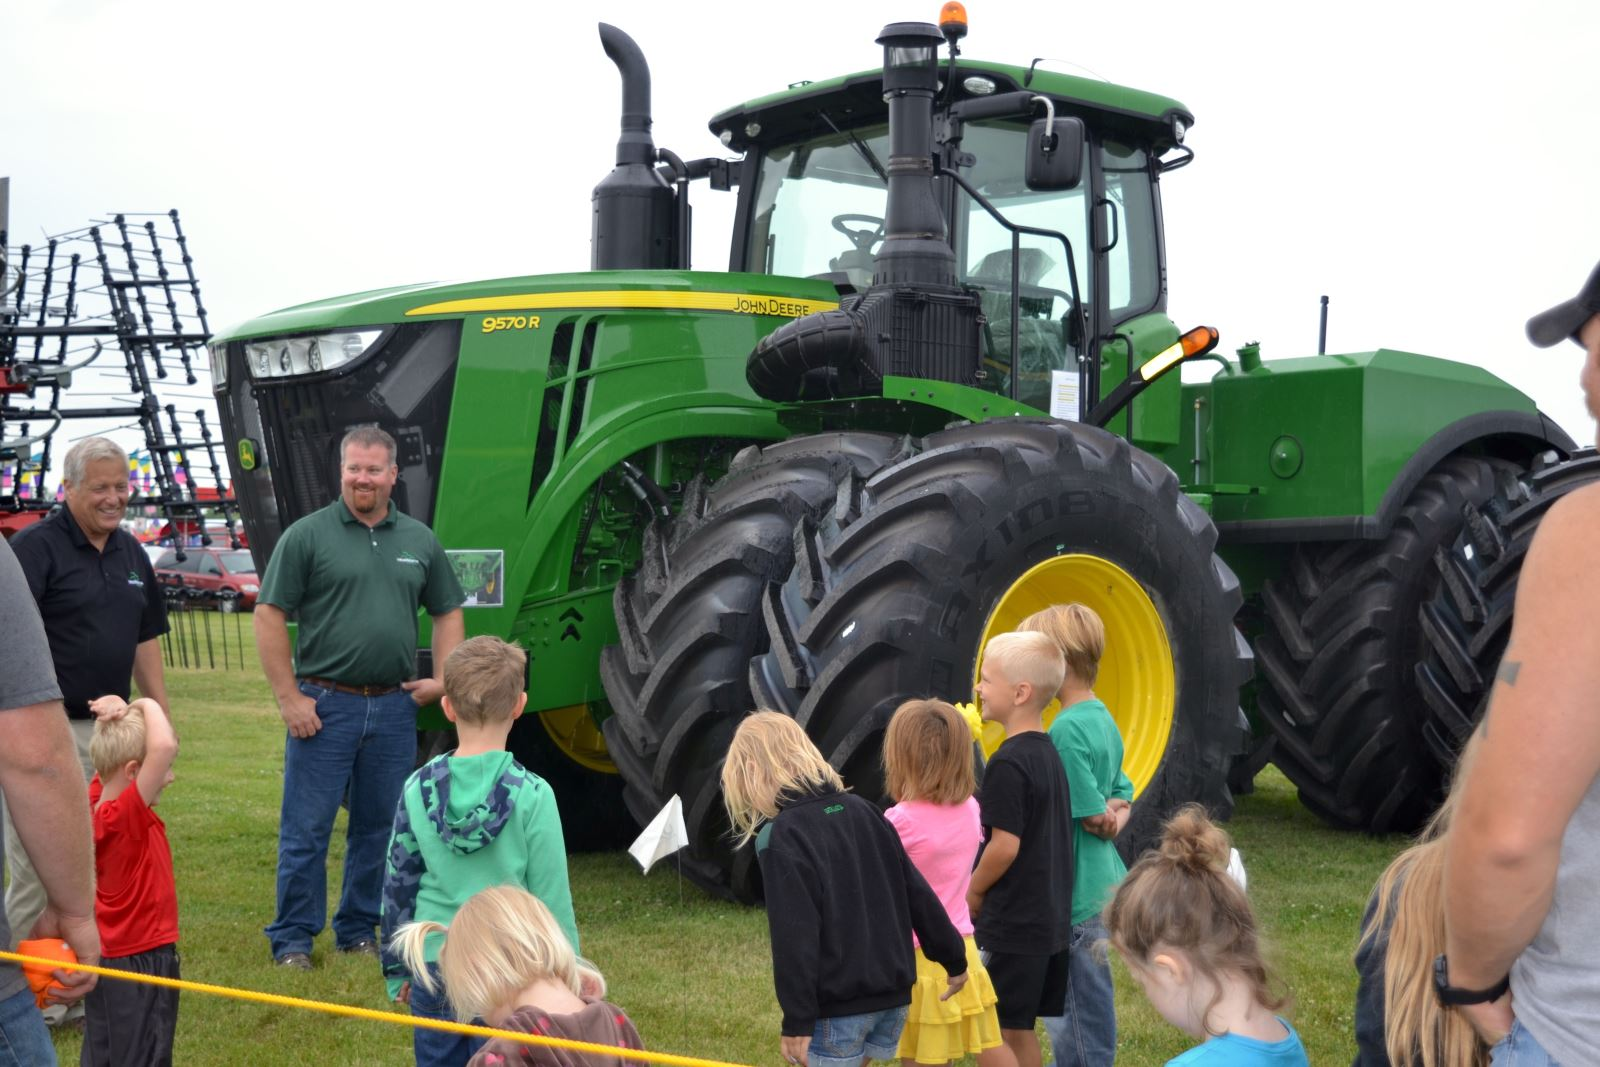 Kids Farm Equipment Safety